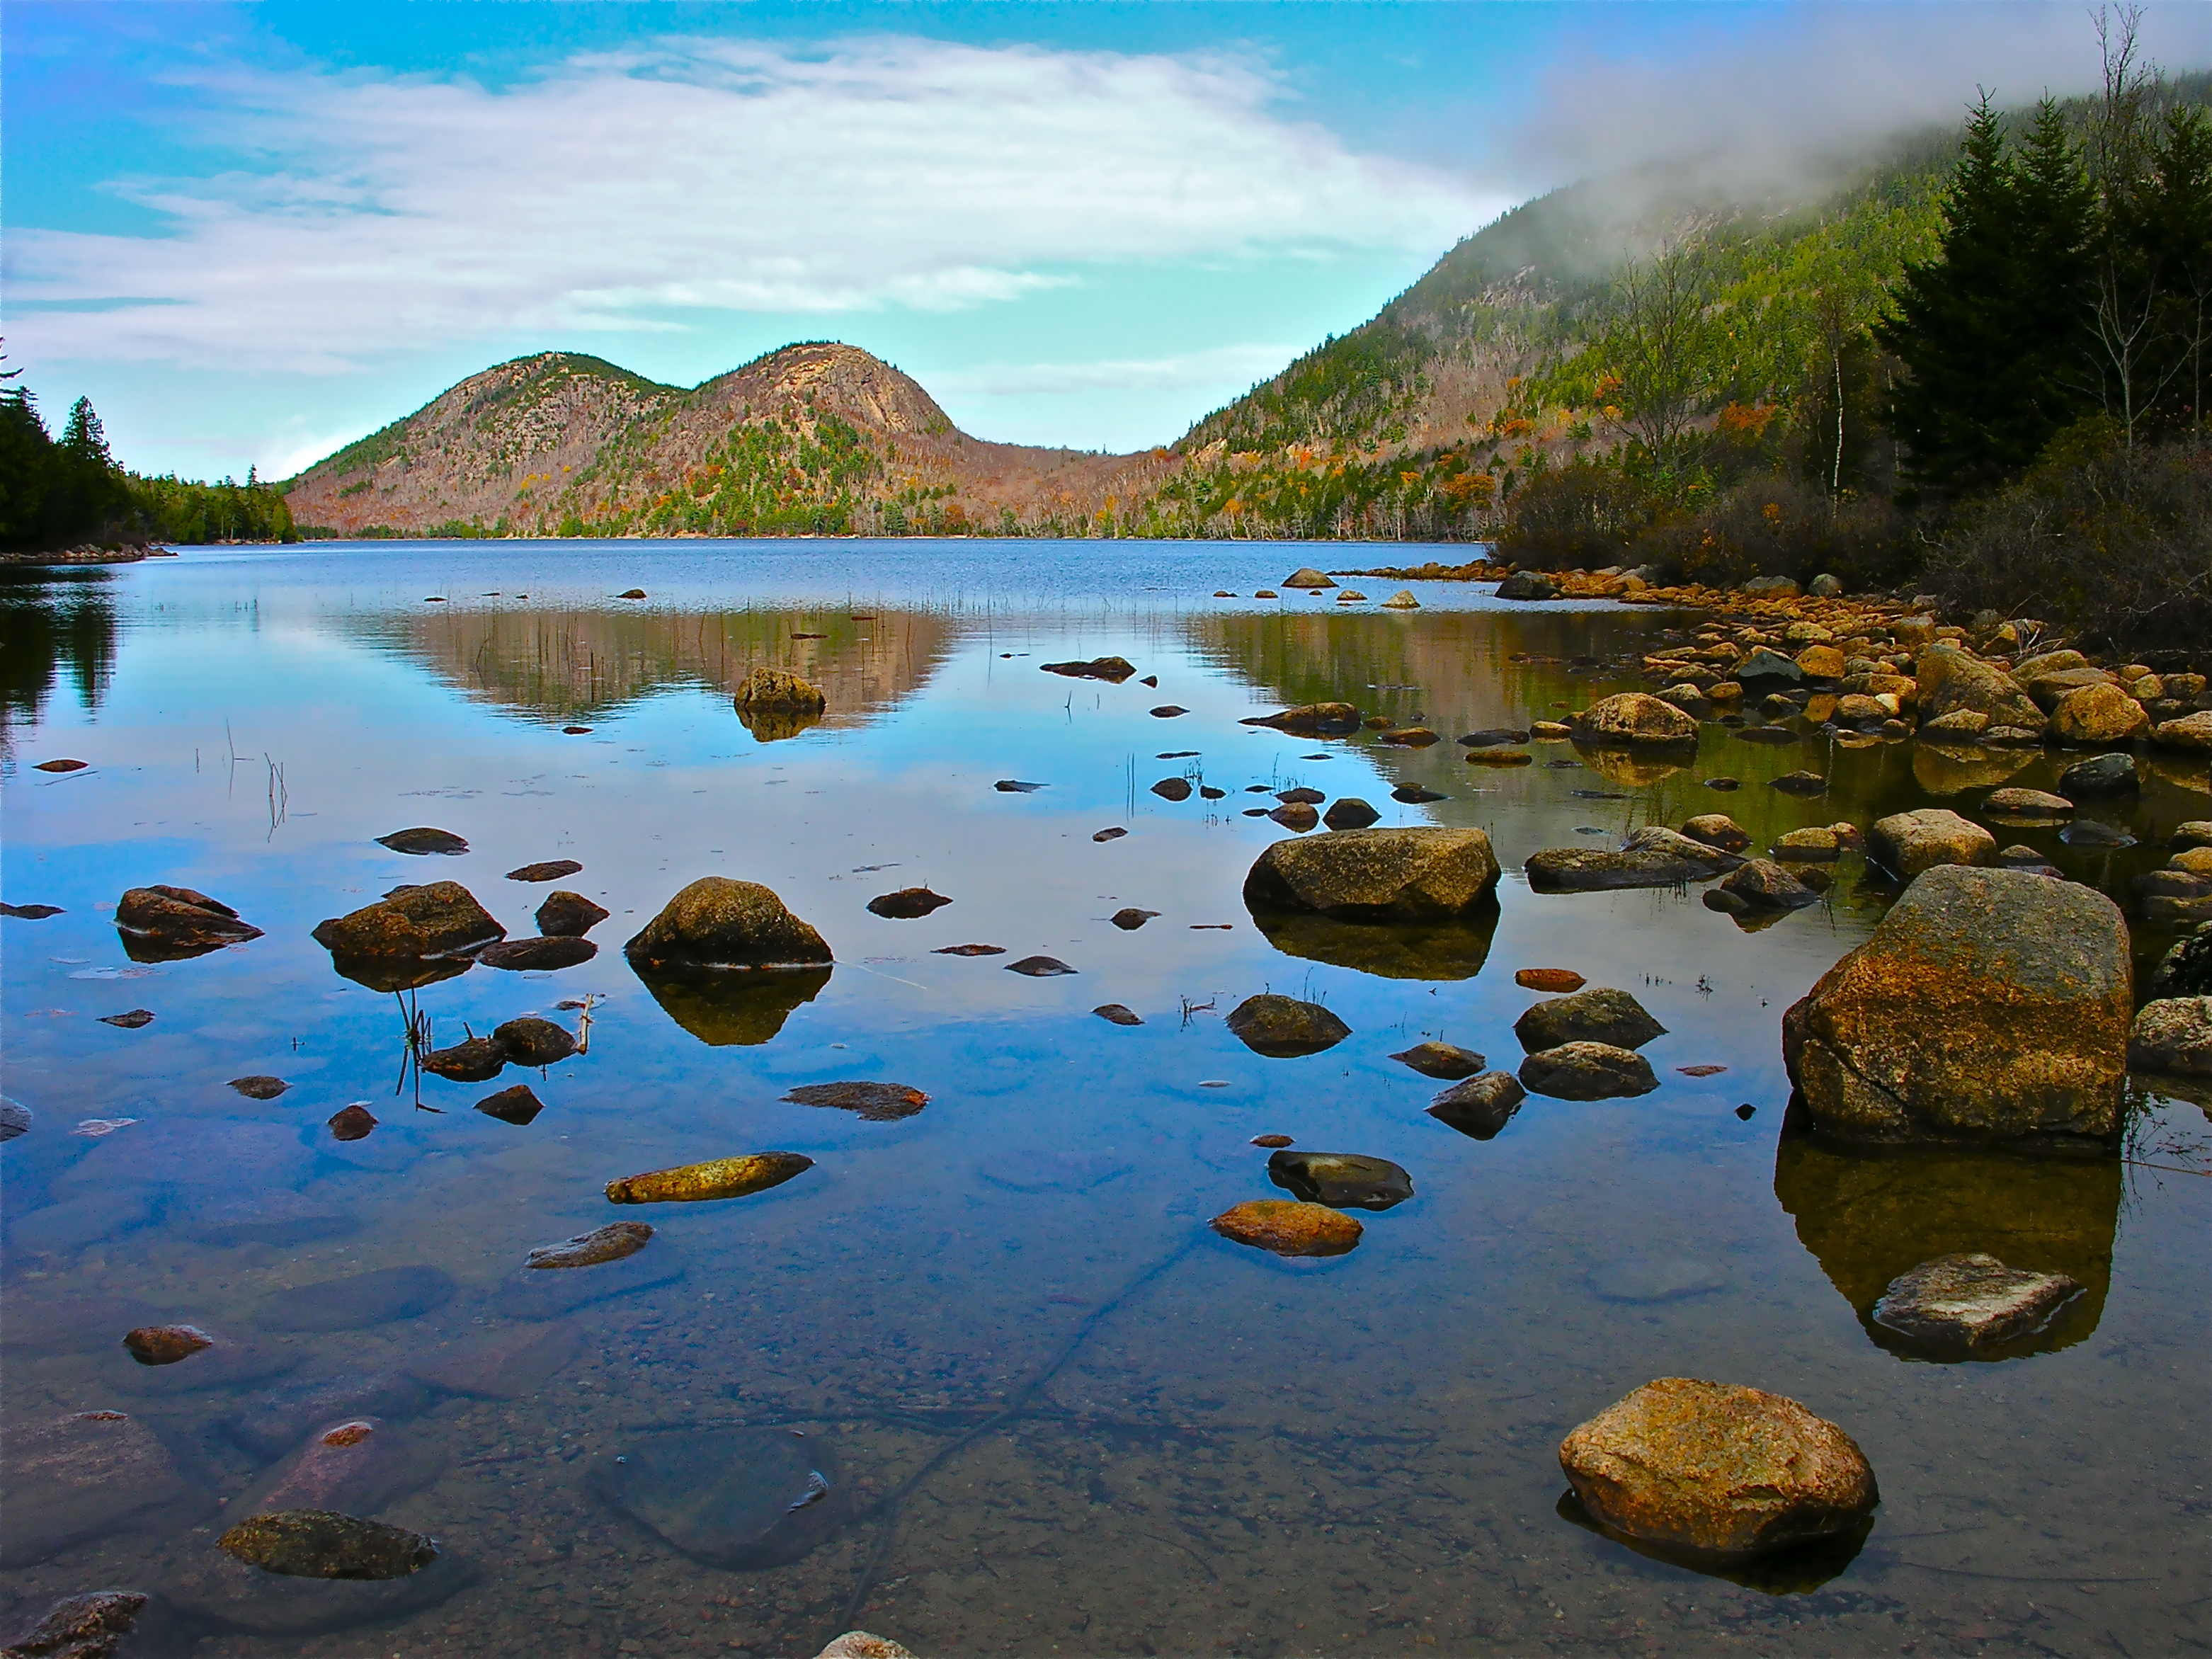 Acadia National Park: 9th Most Visited U.S. National Park in 2011 ...